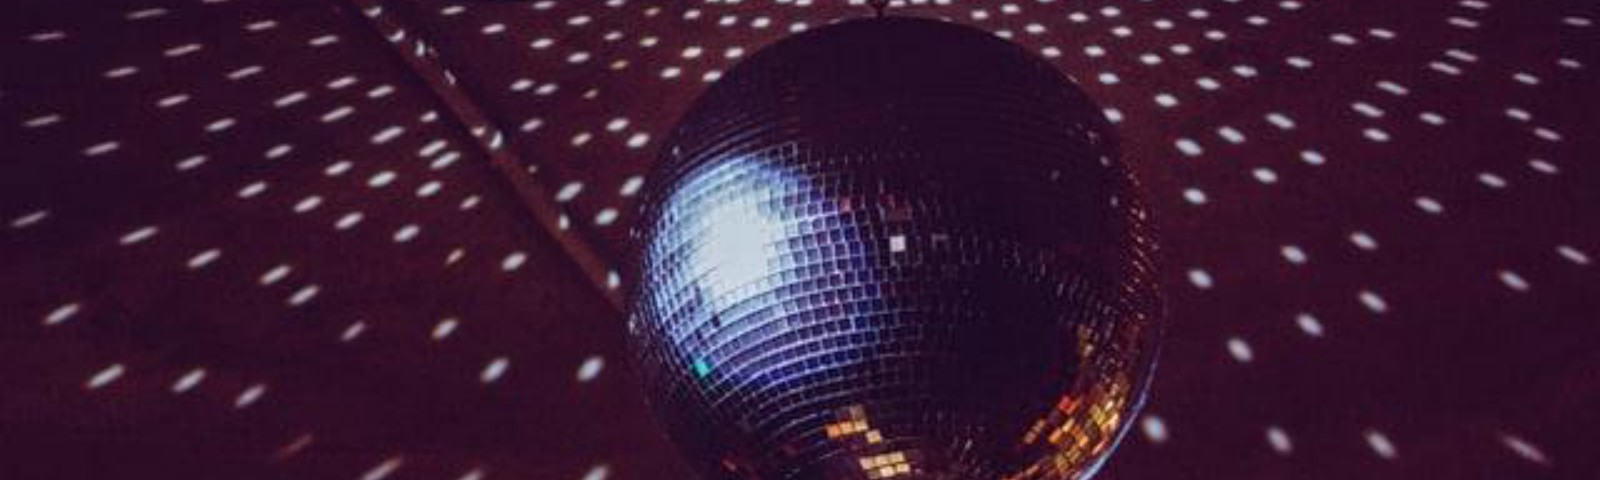 A disco ball reflects on the ceiling of a dark room.